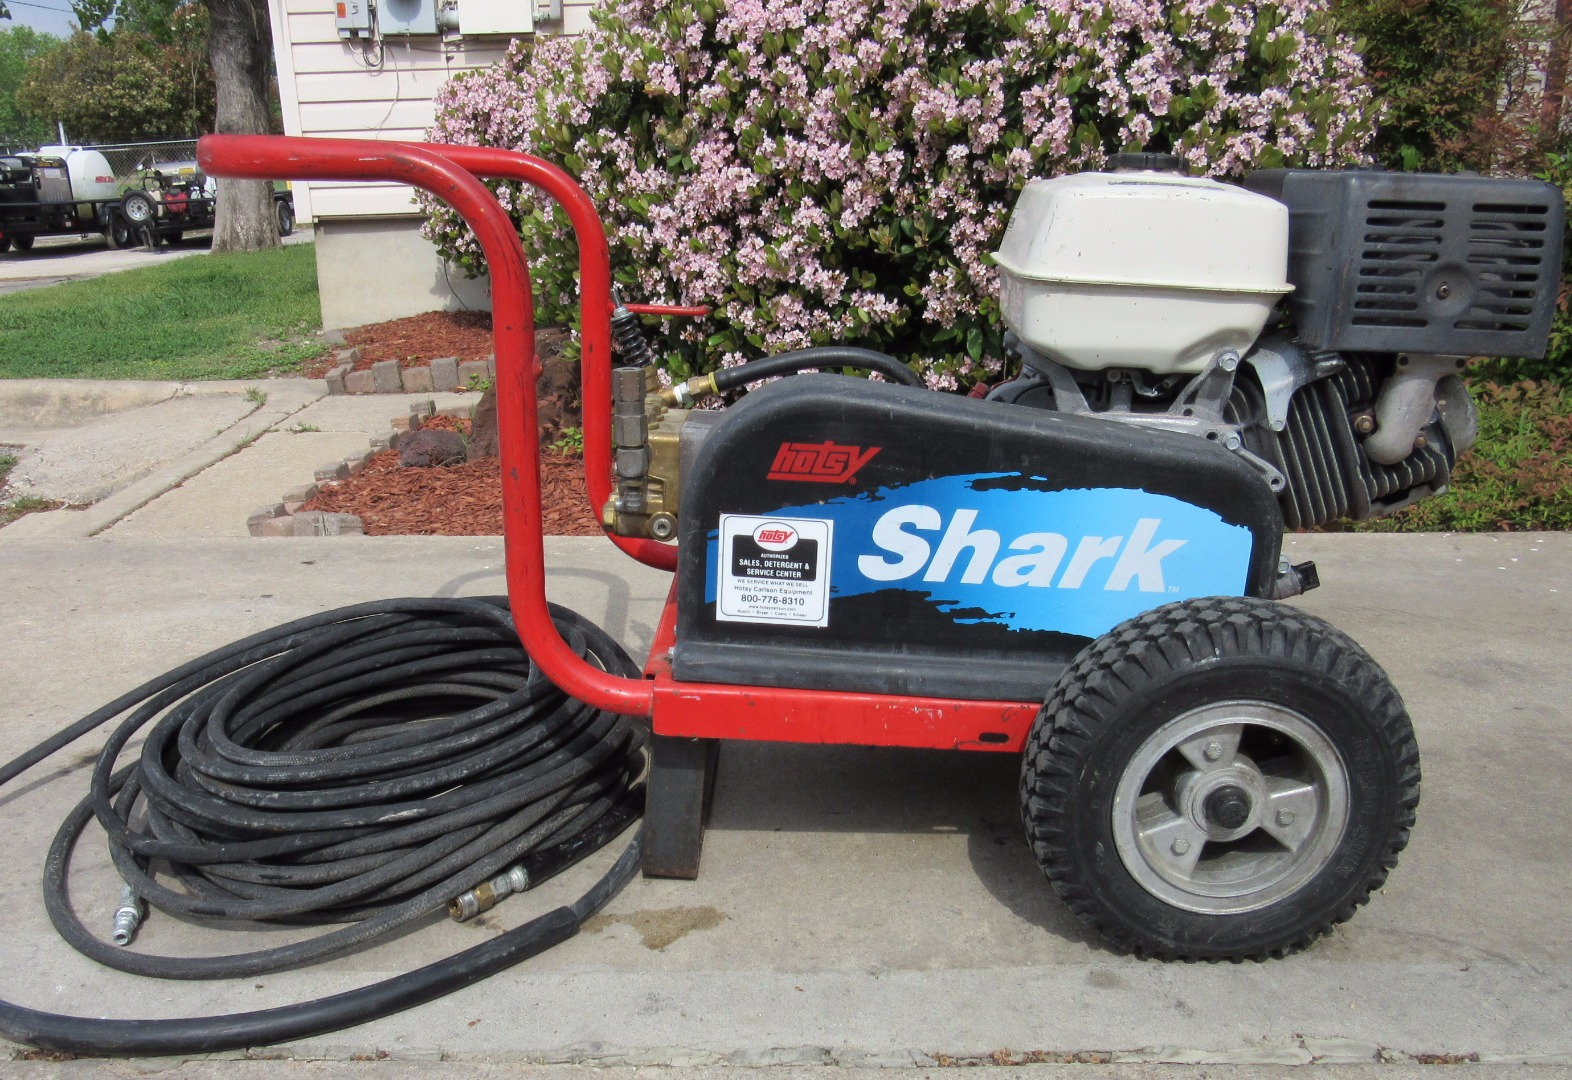 used hotsy shark 445 cold water gas 4gpm 2500psi pressure washer 1430755760263 used hotsy shark 445 cold water gas 4gpm @ 2500psi pressure washer hotsy pressure washer wiring diagram at gsmx.co